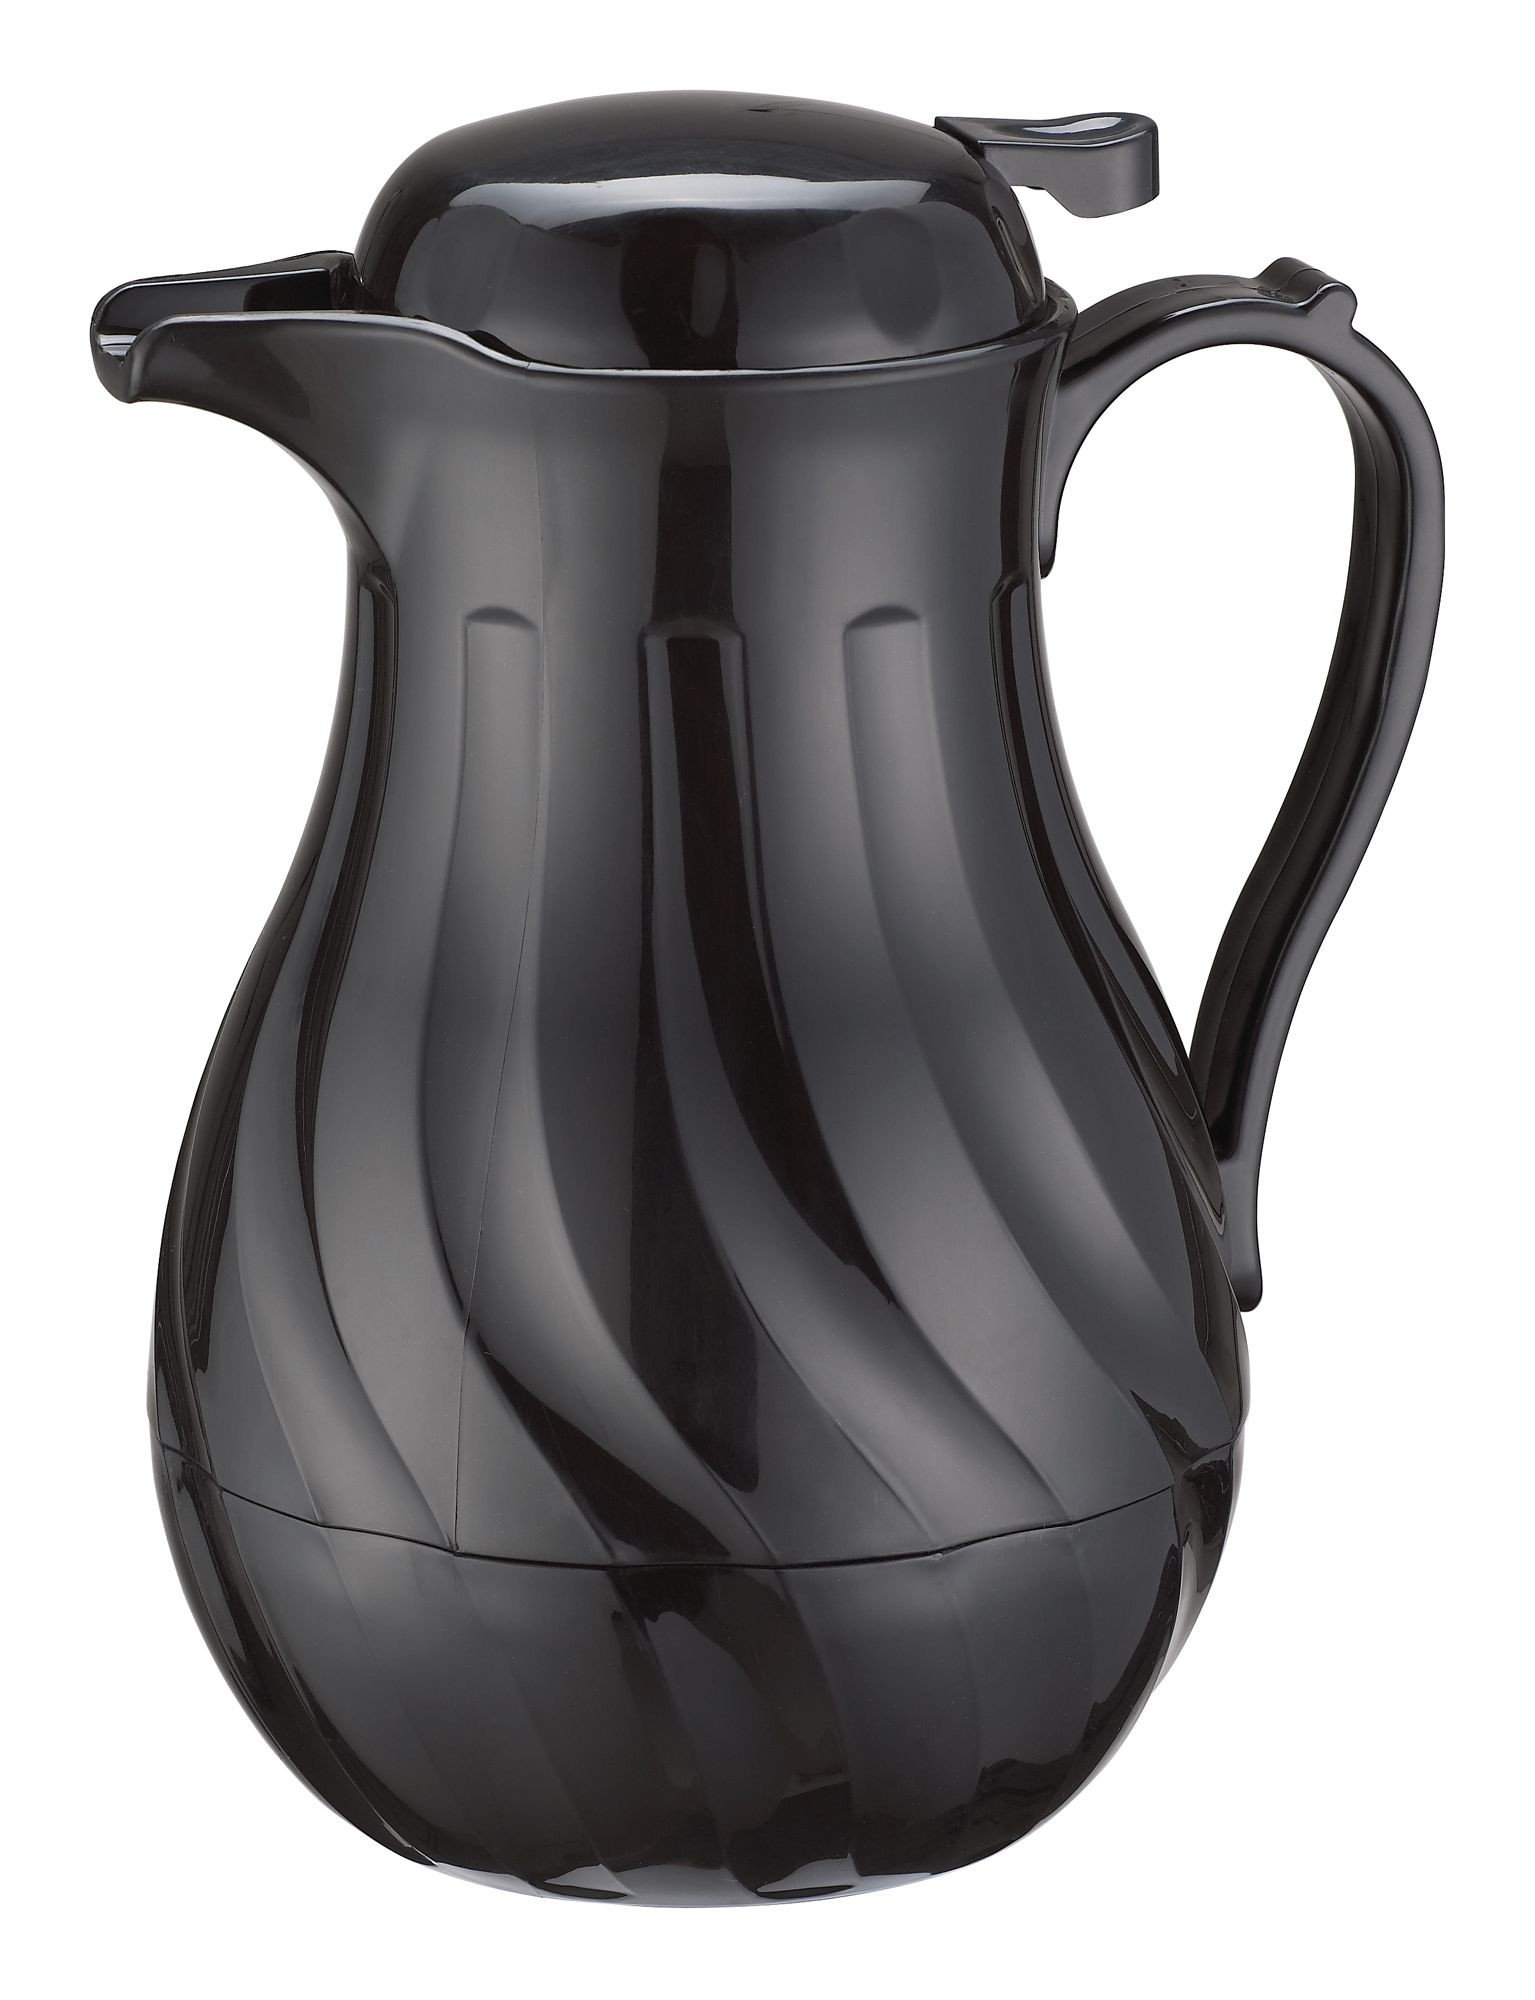 Winco VSW-64K Black Insulated Swirl Design Beverage Server 64 oz.